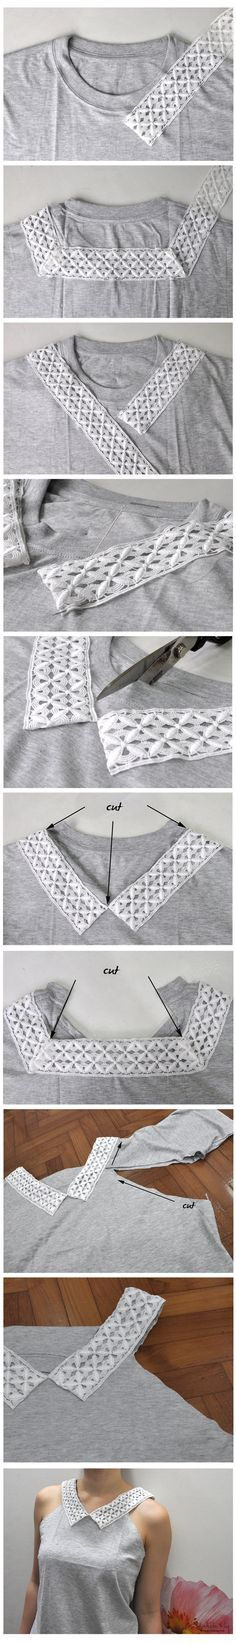 Easy Upcycled Tee | Easy Top DIY Tutorial from T Shirt by DIY Ready at diyready.com/diy-clothes-sewing-blouses-tutorial/